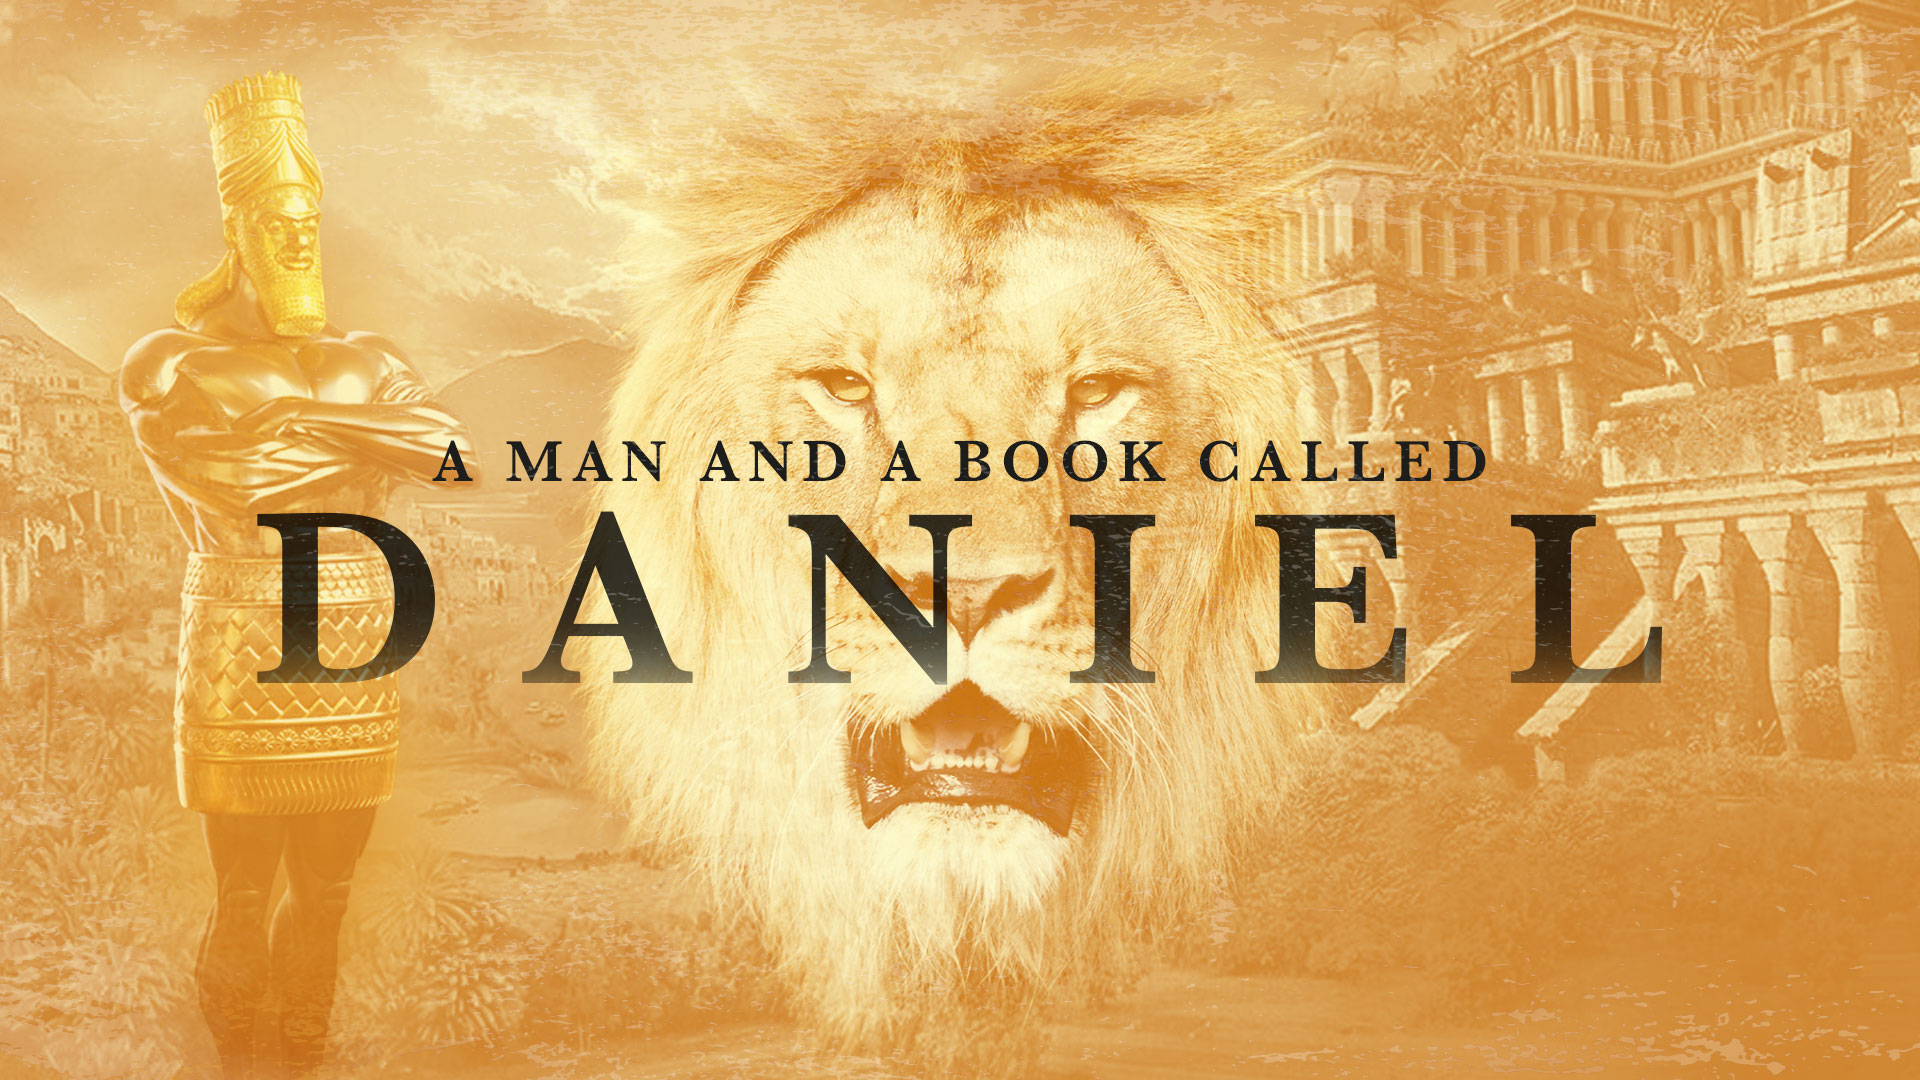 "A Man and a Book called Daniel (Pt6) The Monarch, the monument, the music and the meeting""."